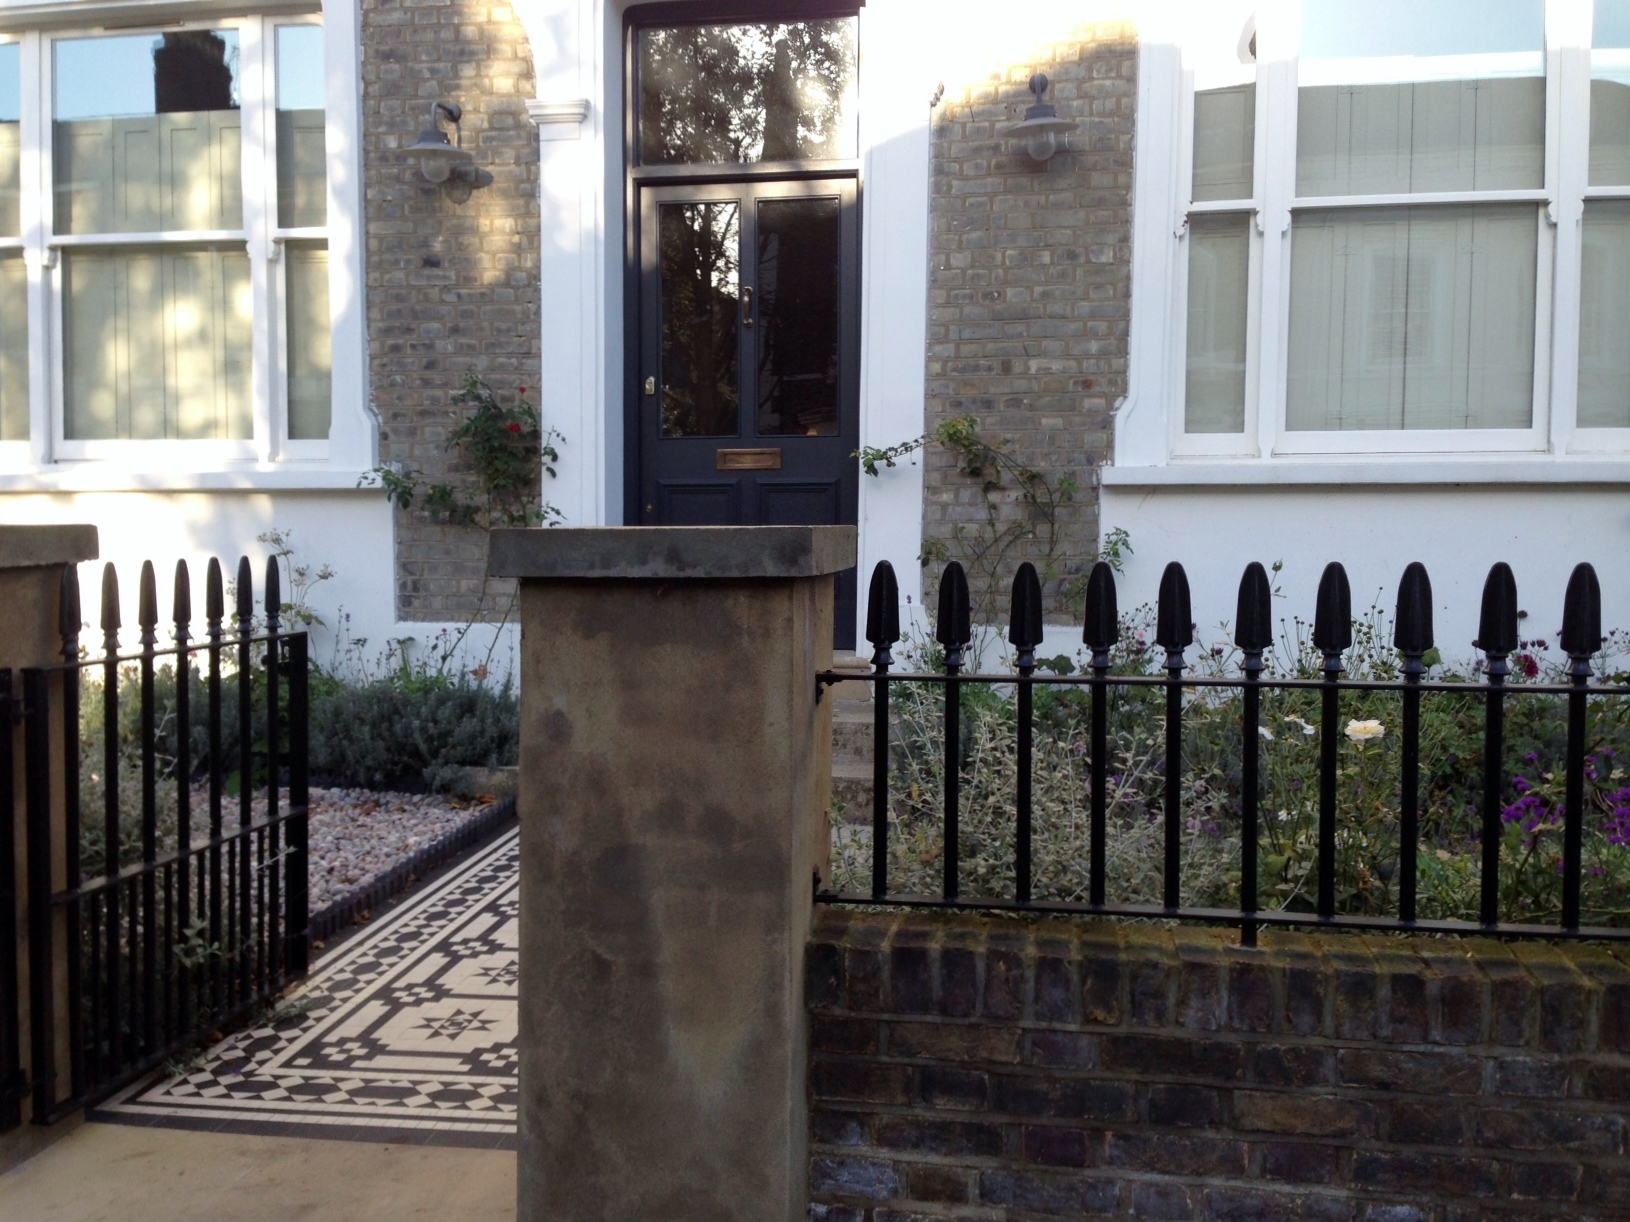 Islington Victorian mosaic tile path York stone sandstone paving wrought iron rails and gate London (36)